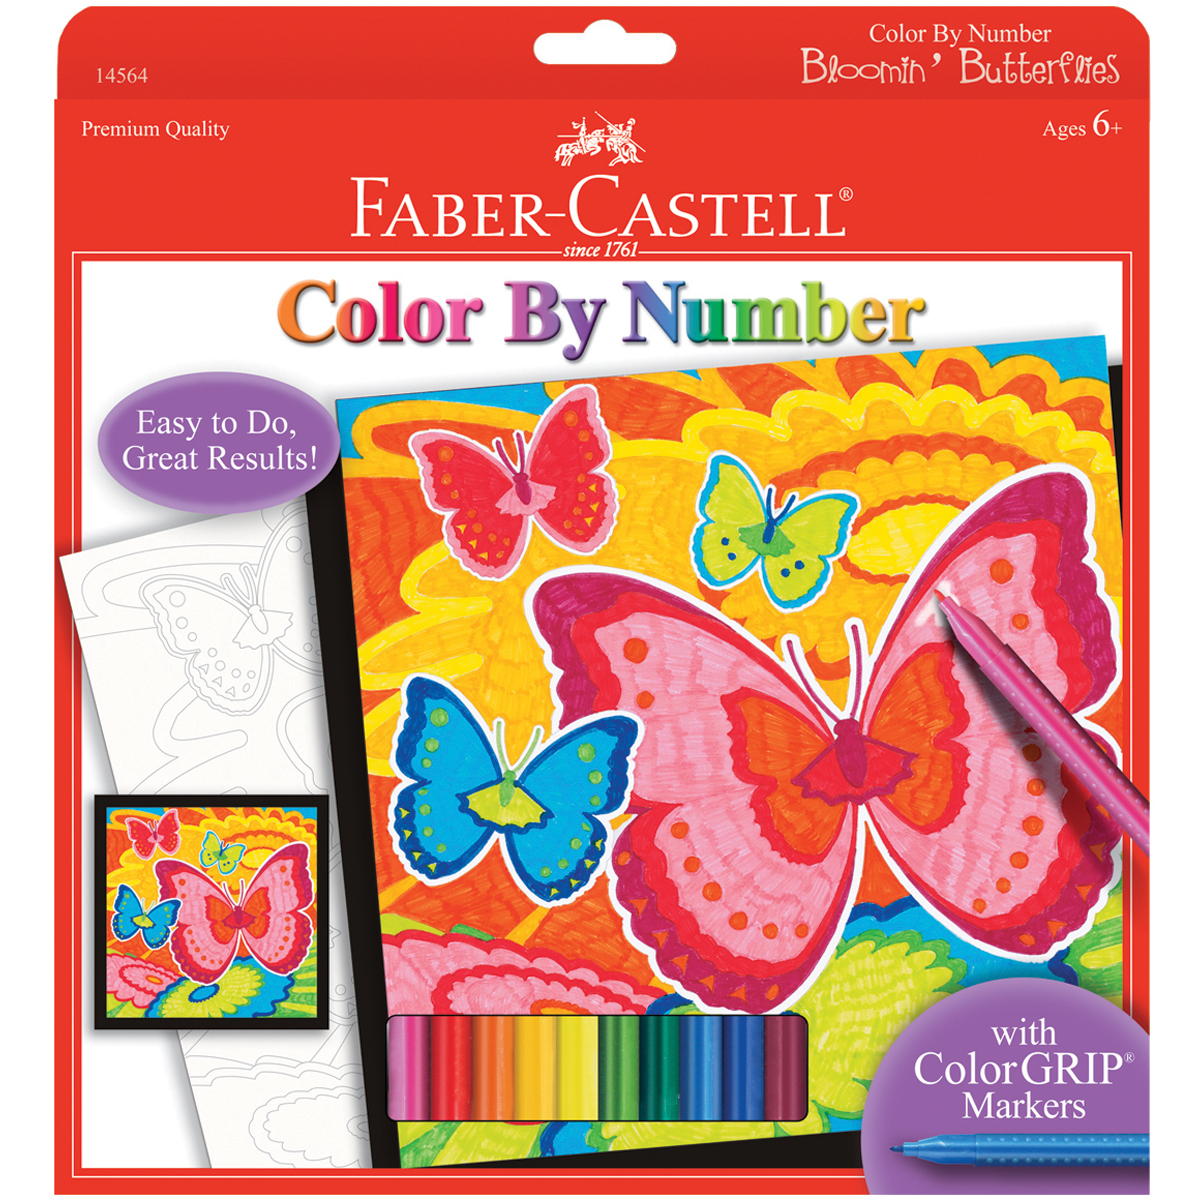 Color By Number Kit 9X9-Bloomin' Butterflies